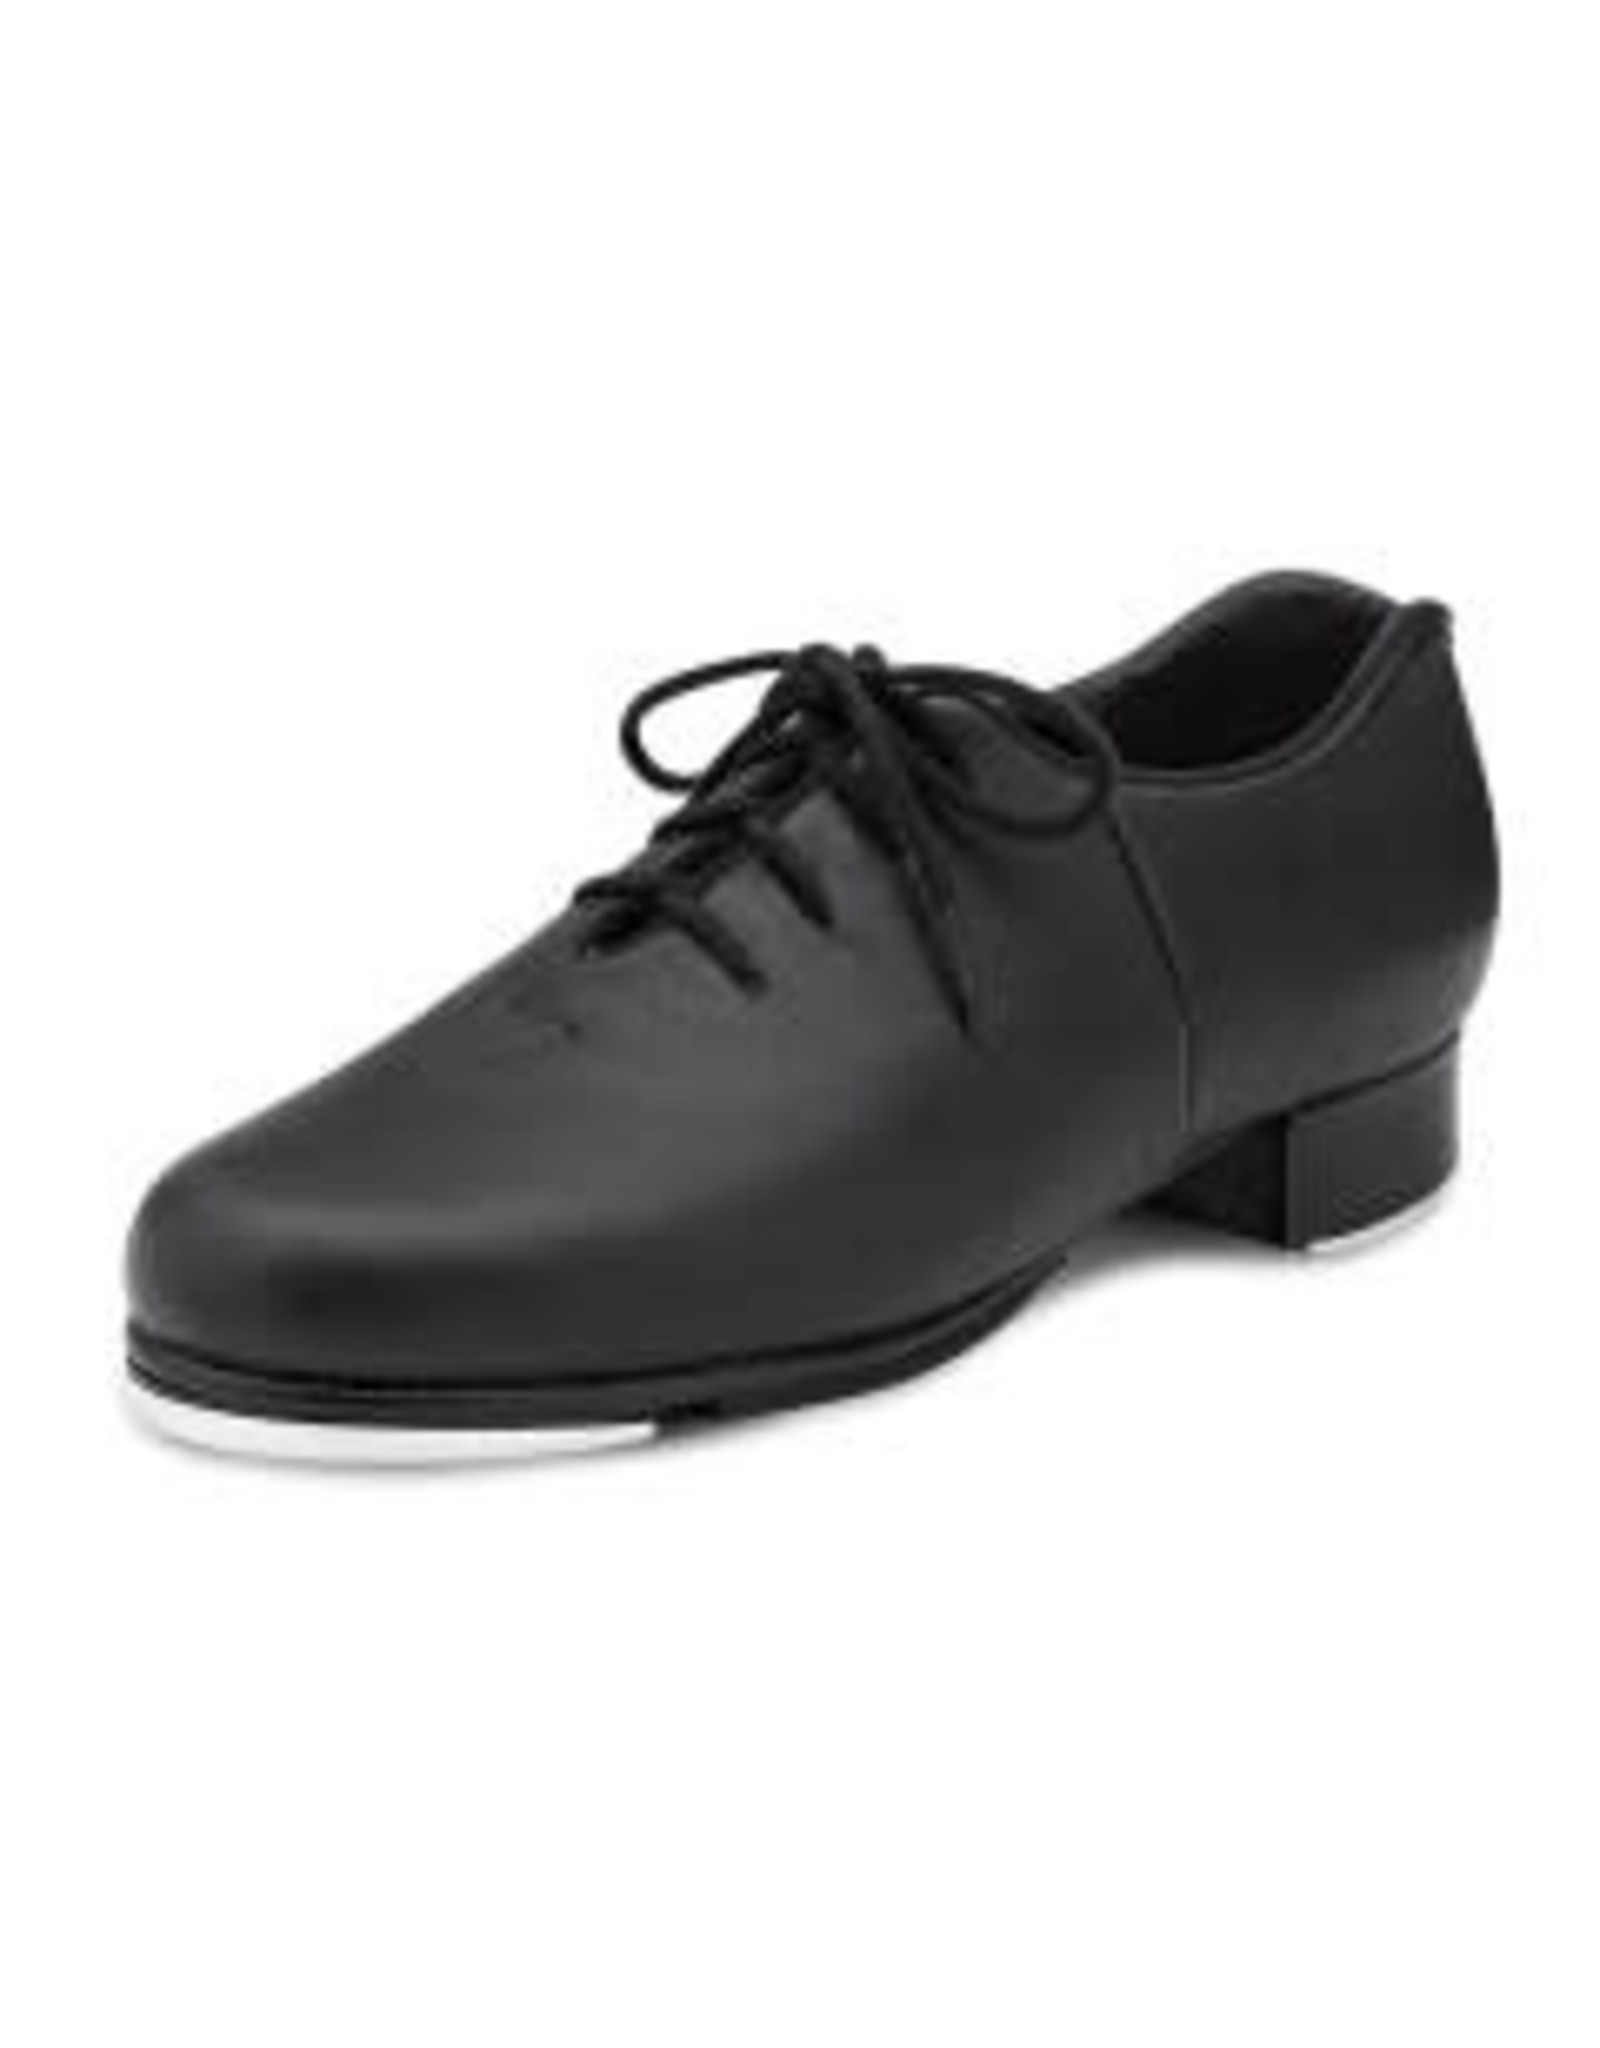 Bloch / Mirella Audeo Jazz Tap Black (381G)